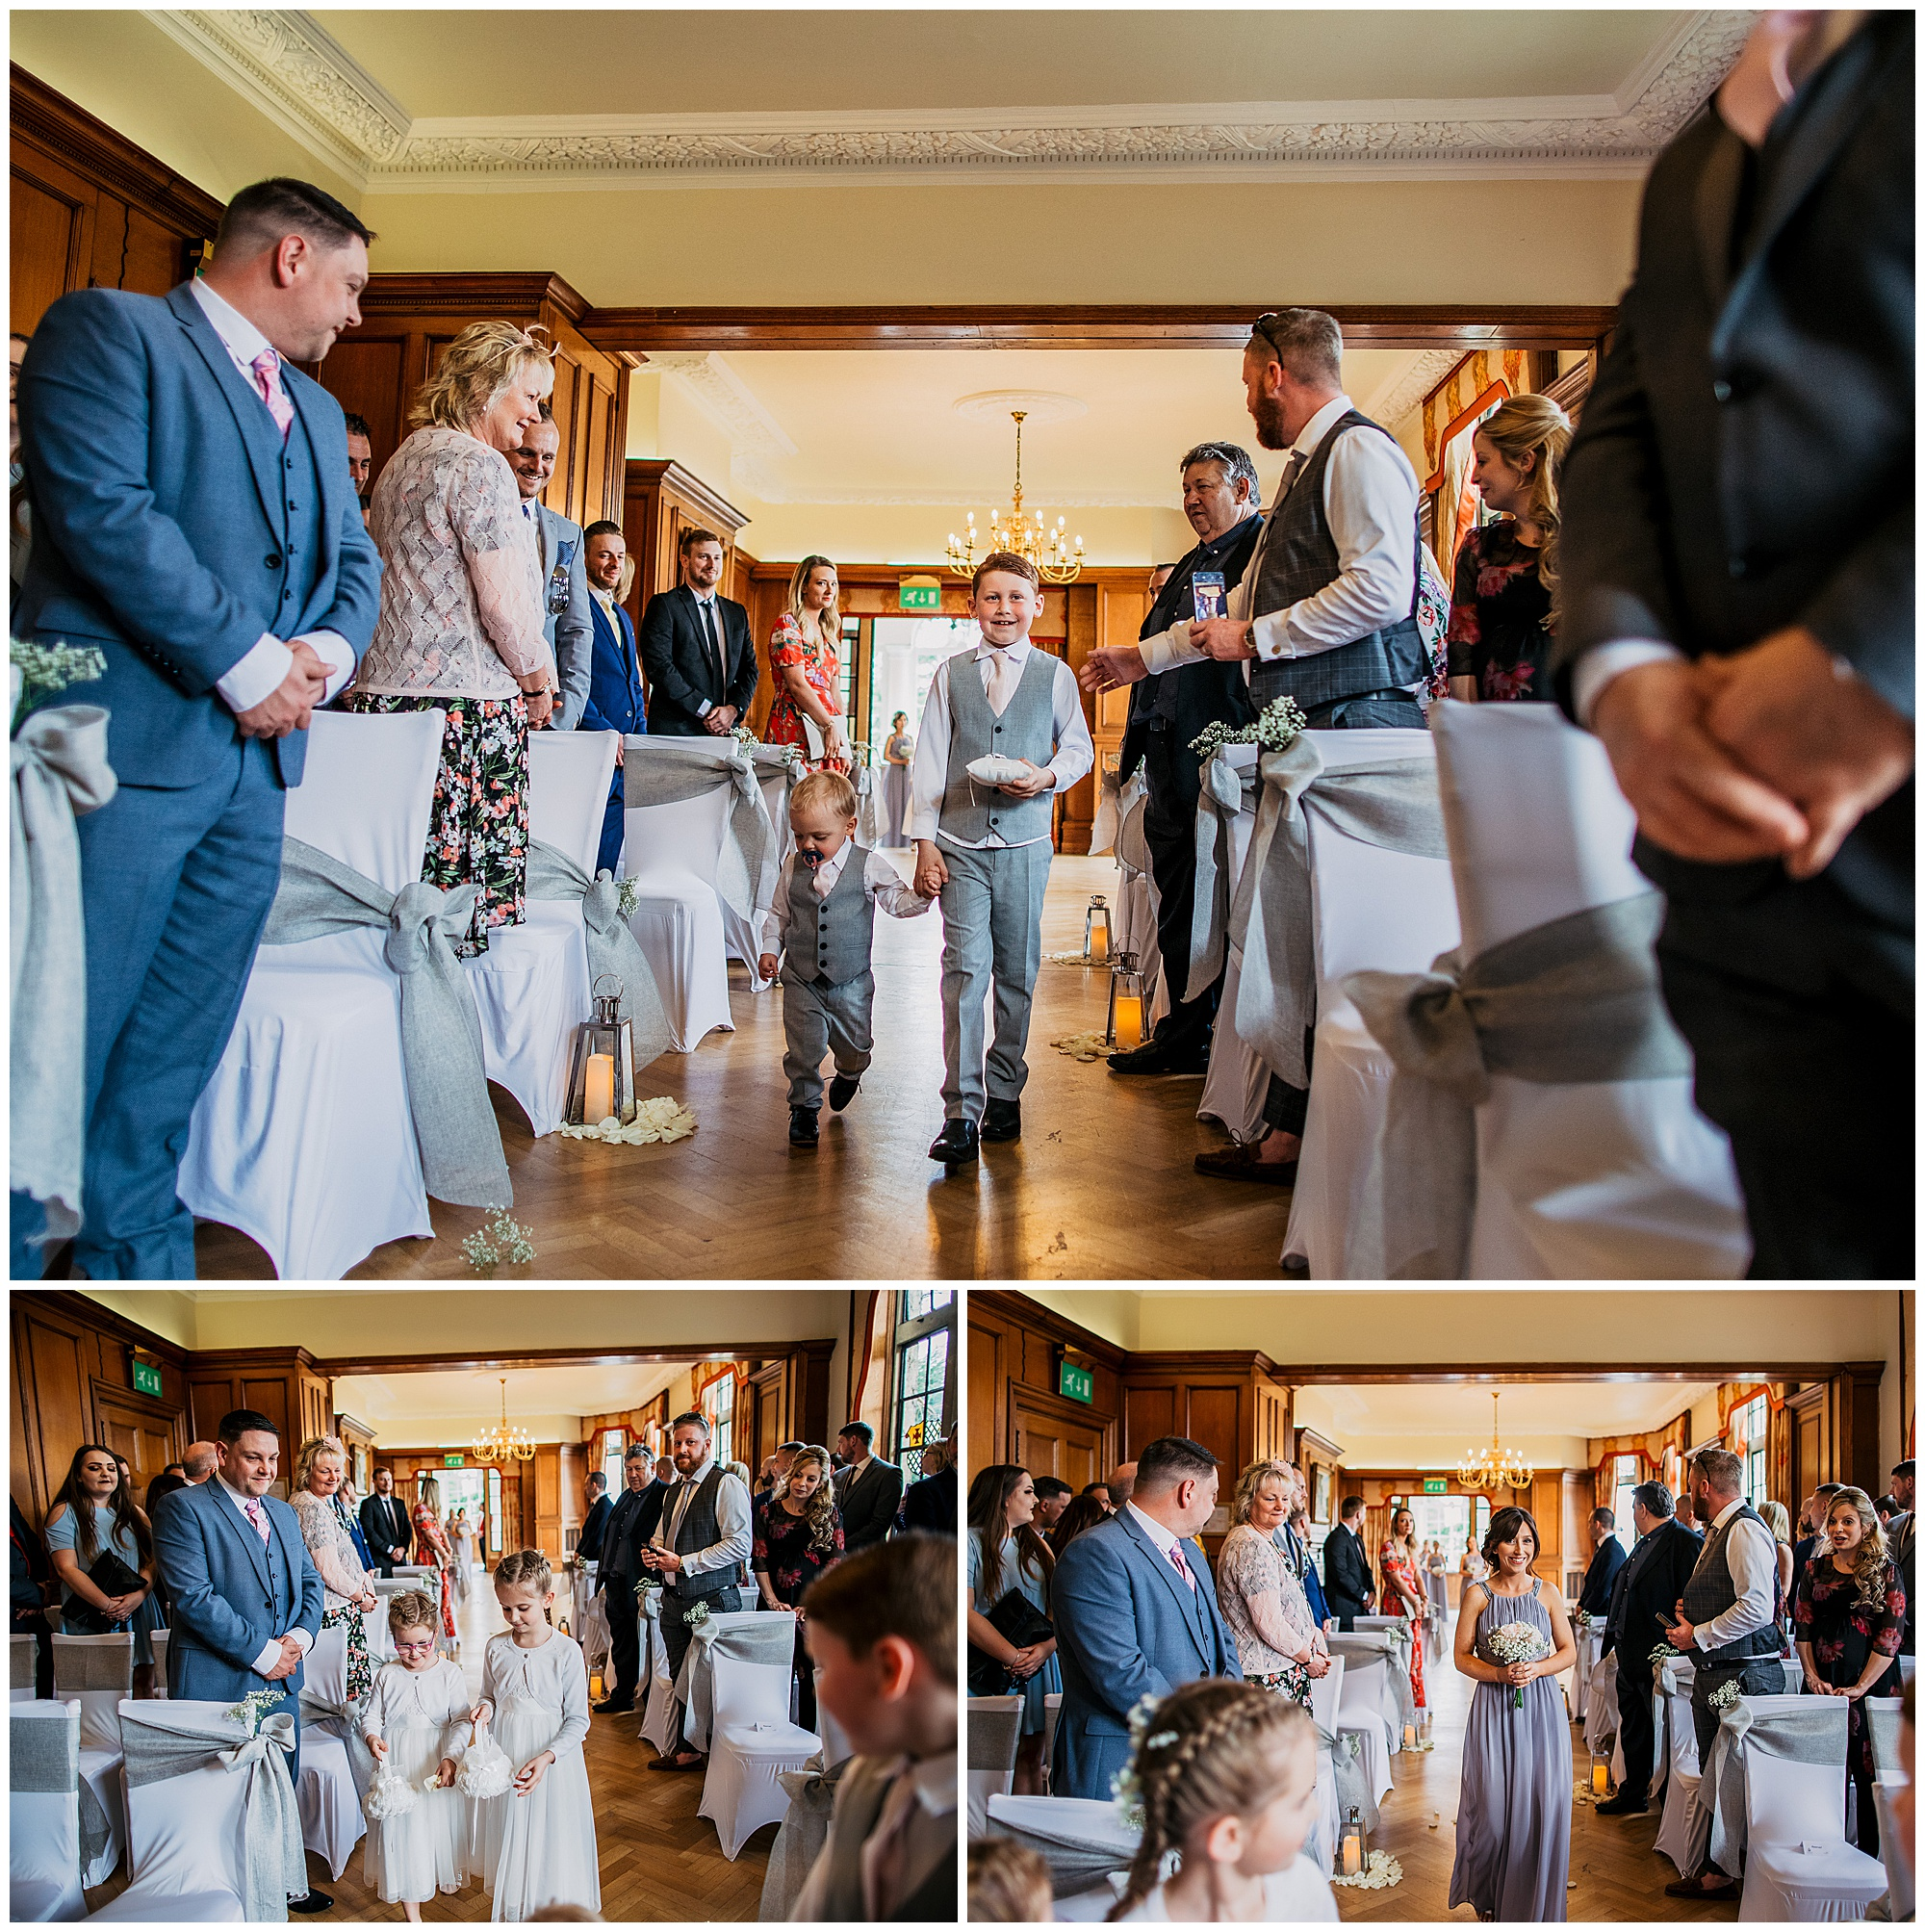 ceremony at pennyhill park hotel and spa